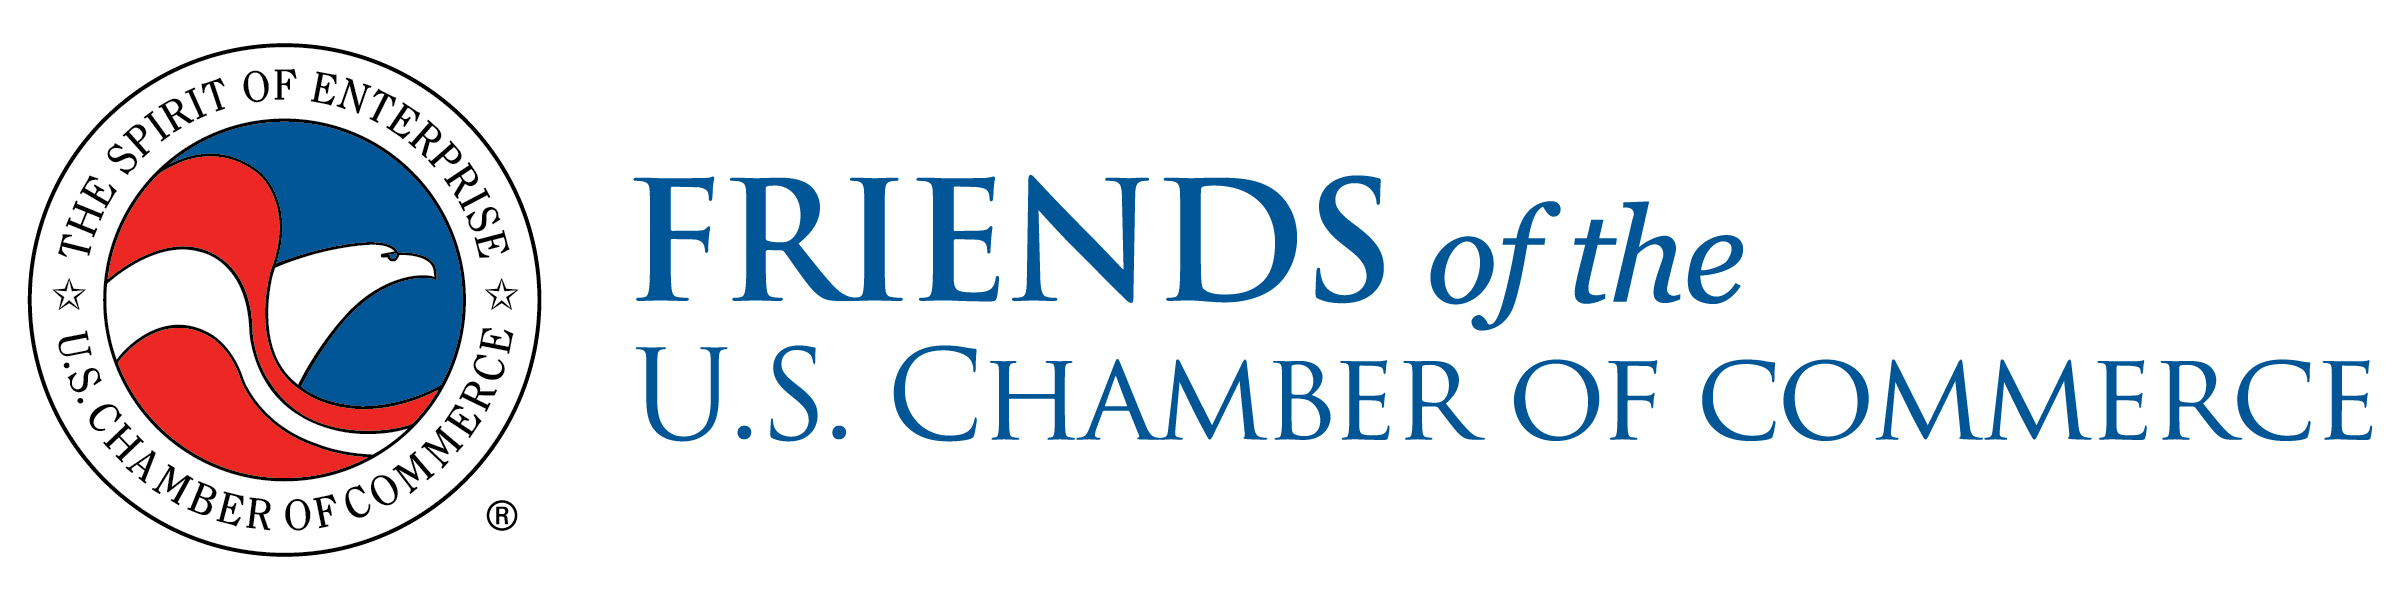 Friends of the U.S. Chamber of Commerce